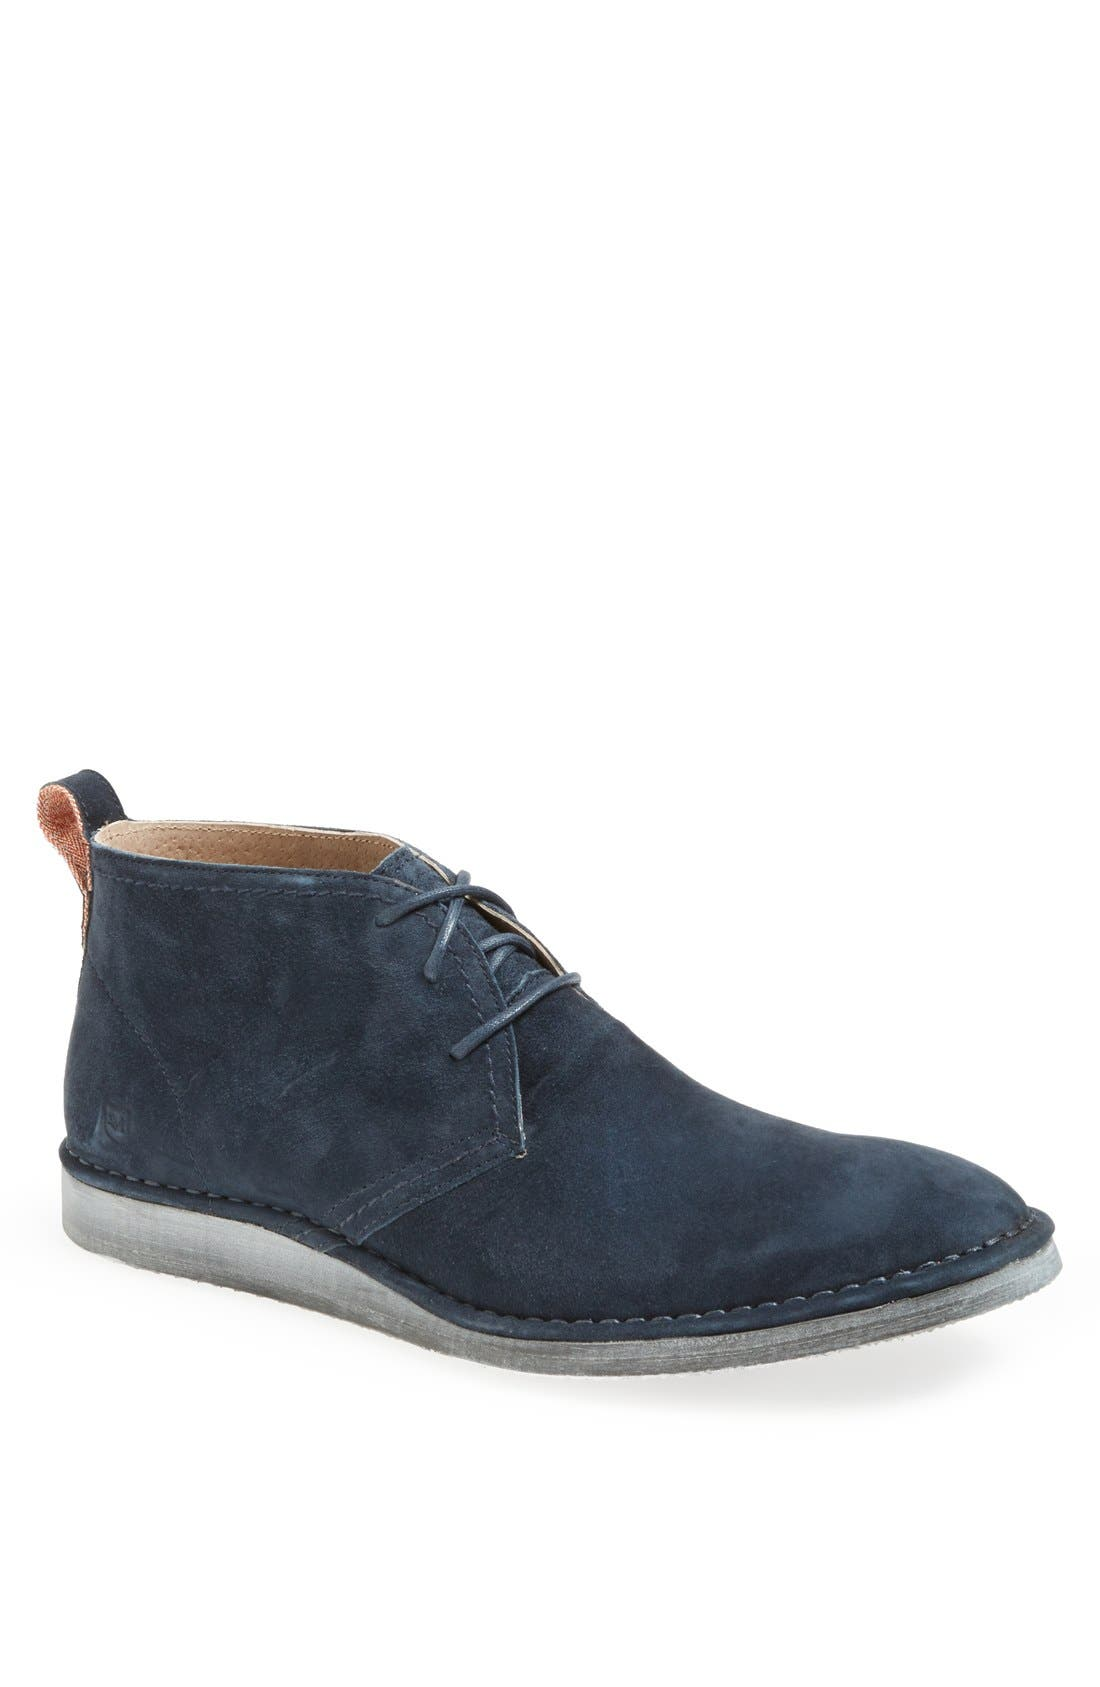 Main Image - Andrew Marc 'Parkchester' Chukka Boot (Men)